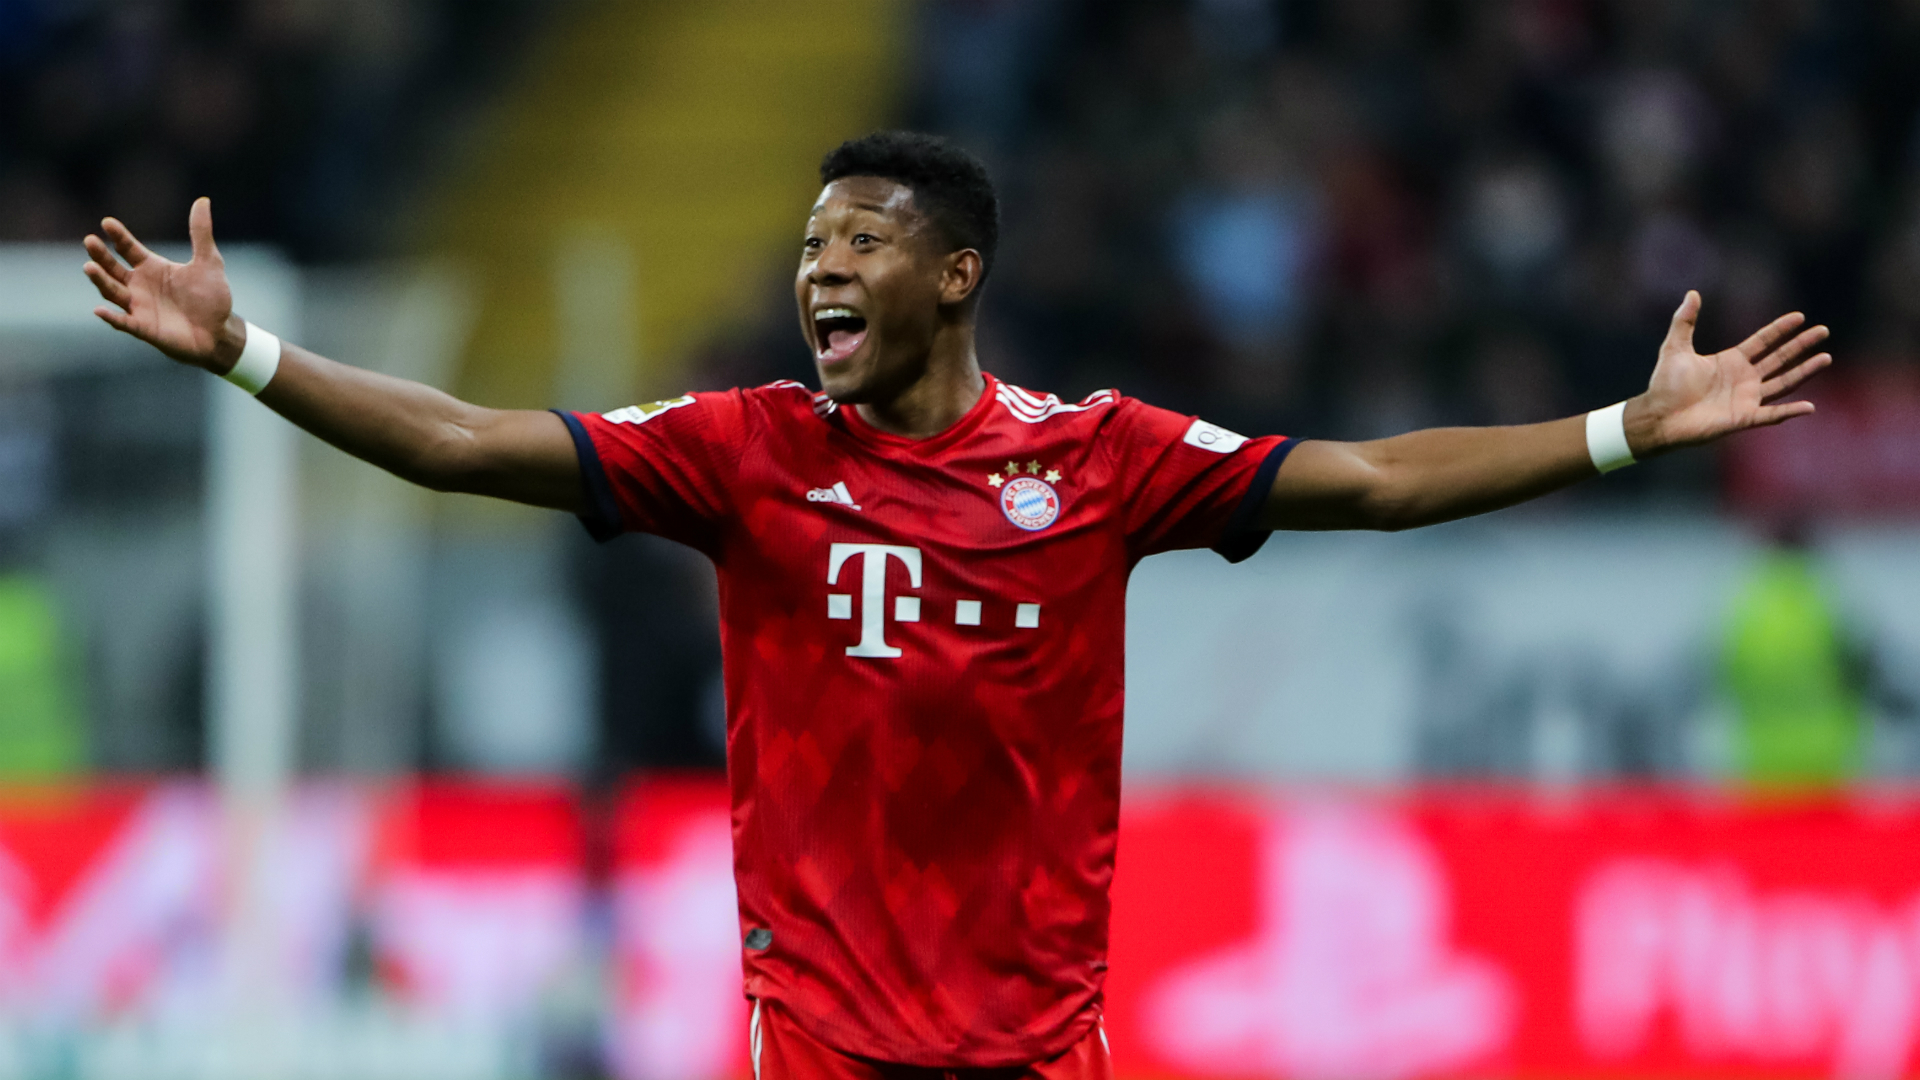 Liverpool are beatable and treble is possible, claims Alaba